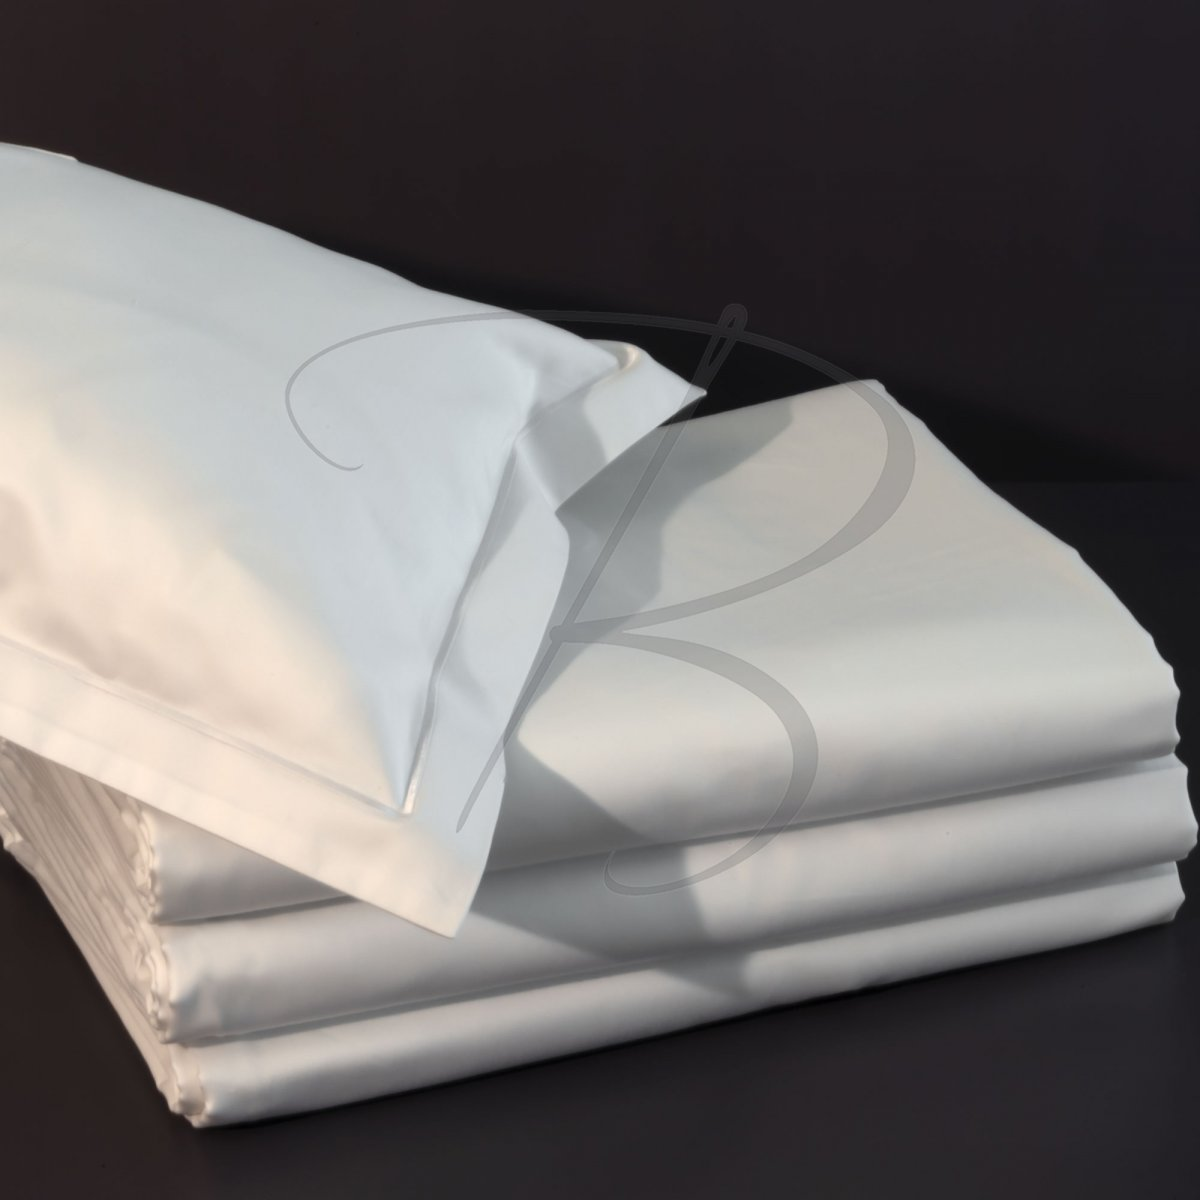 Cotton fitted sheet 400 - 140 x 190 - 140g/m² - 400TC